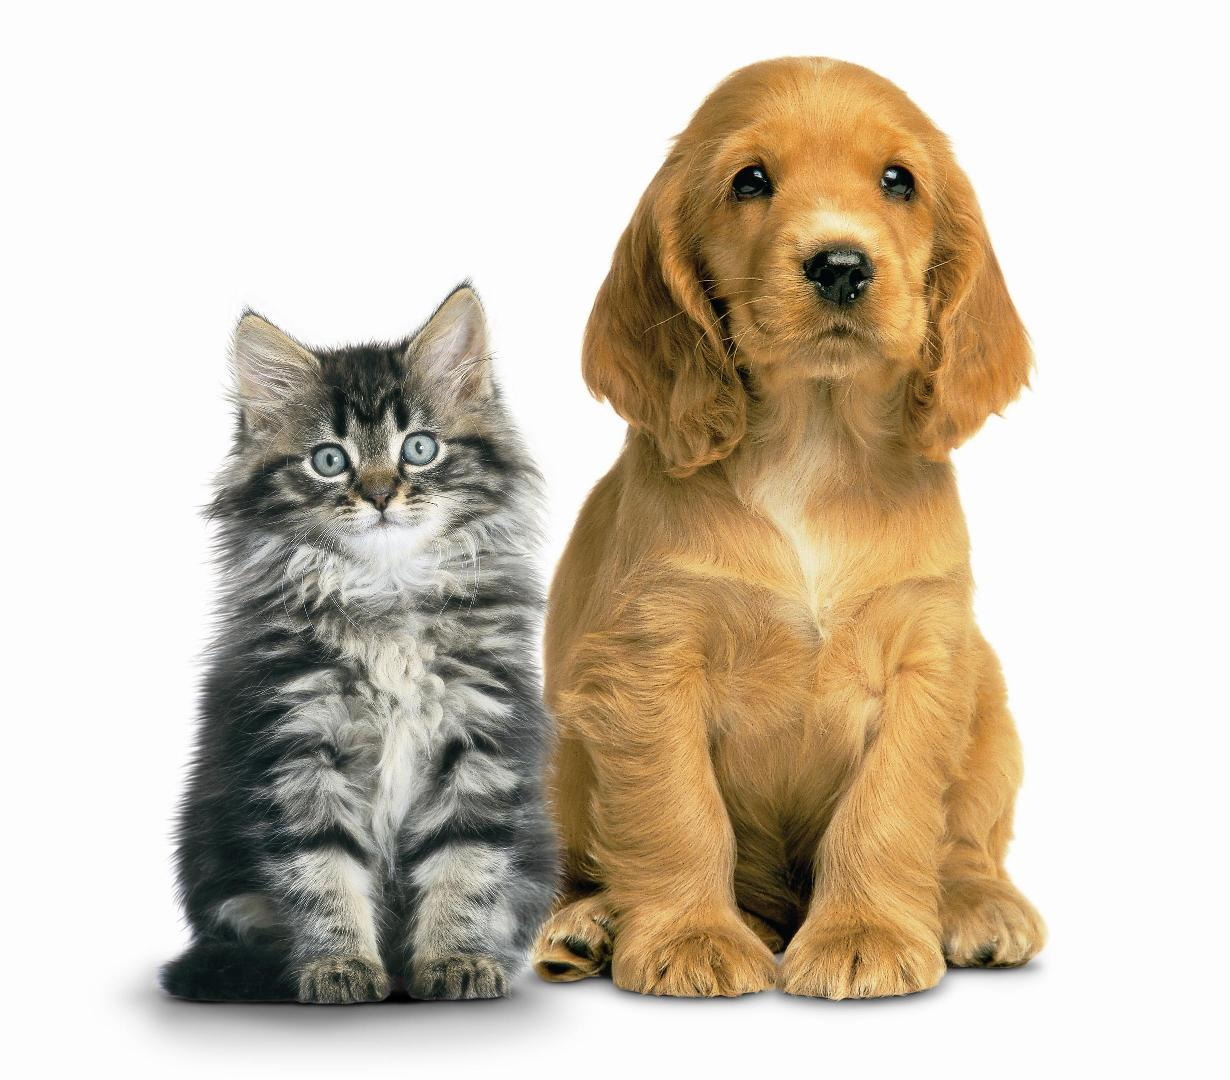 ca38d4a.png - PNG HD Dogs And Cats - Dog HD PNG